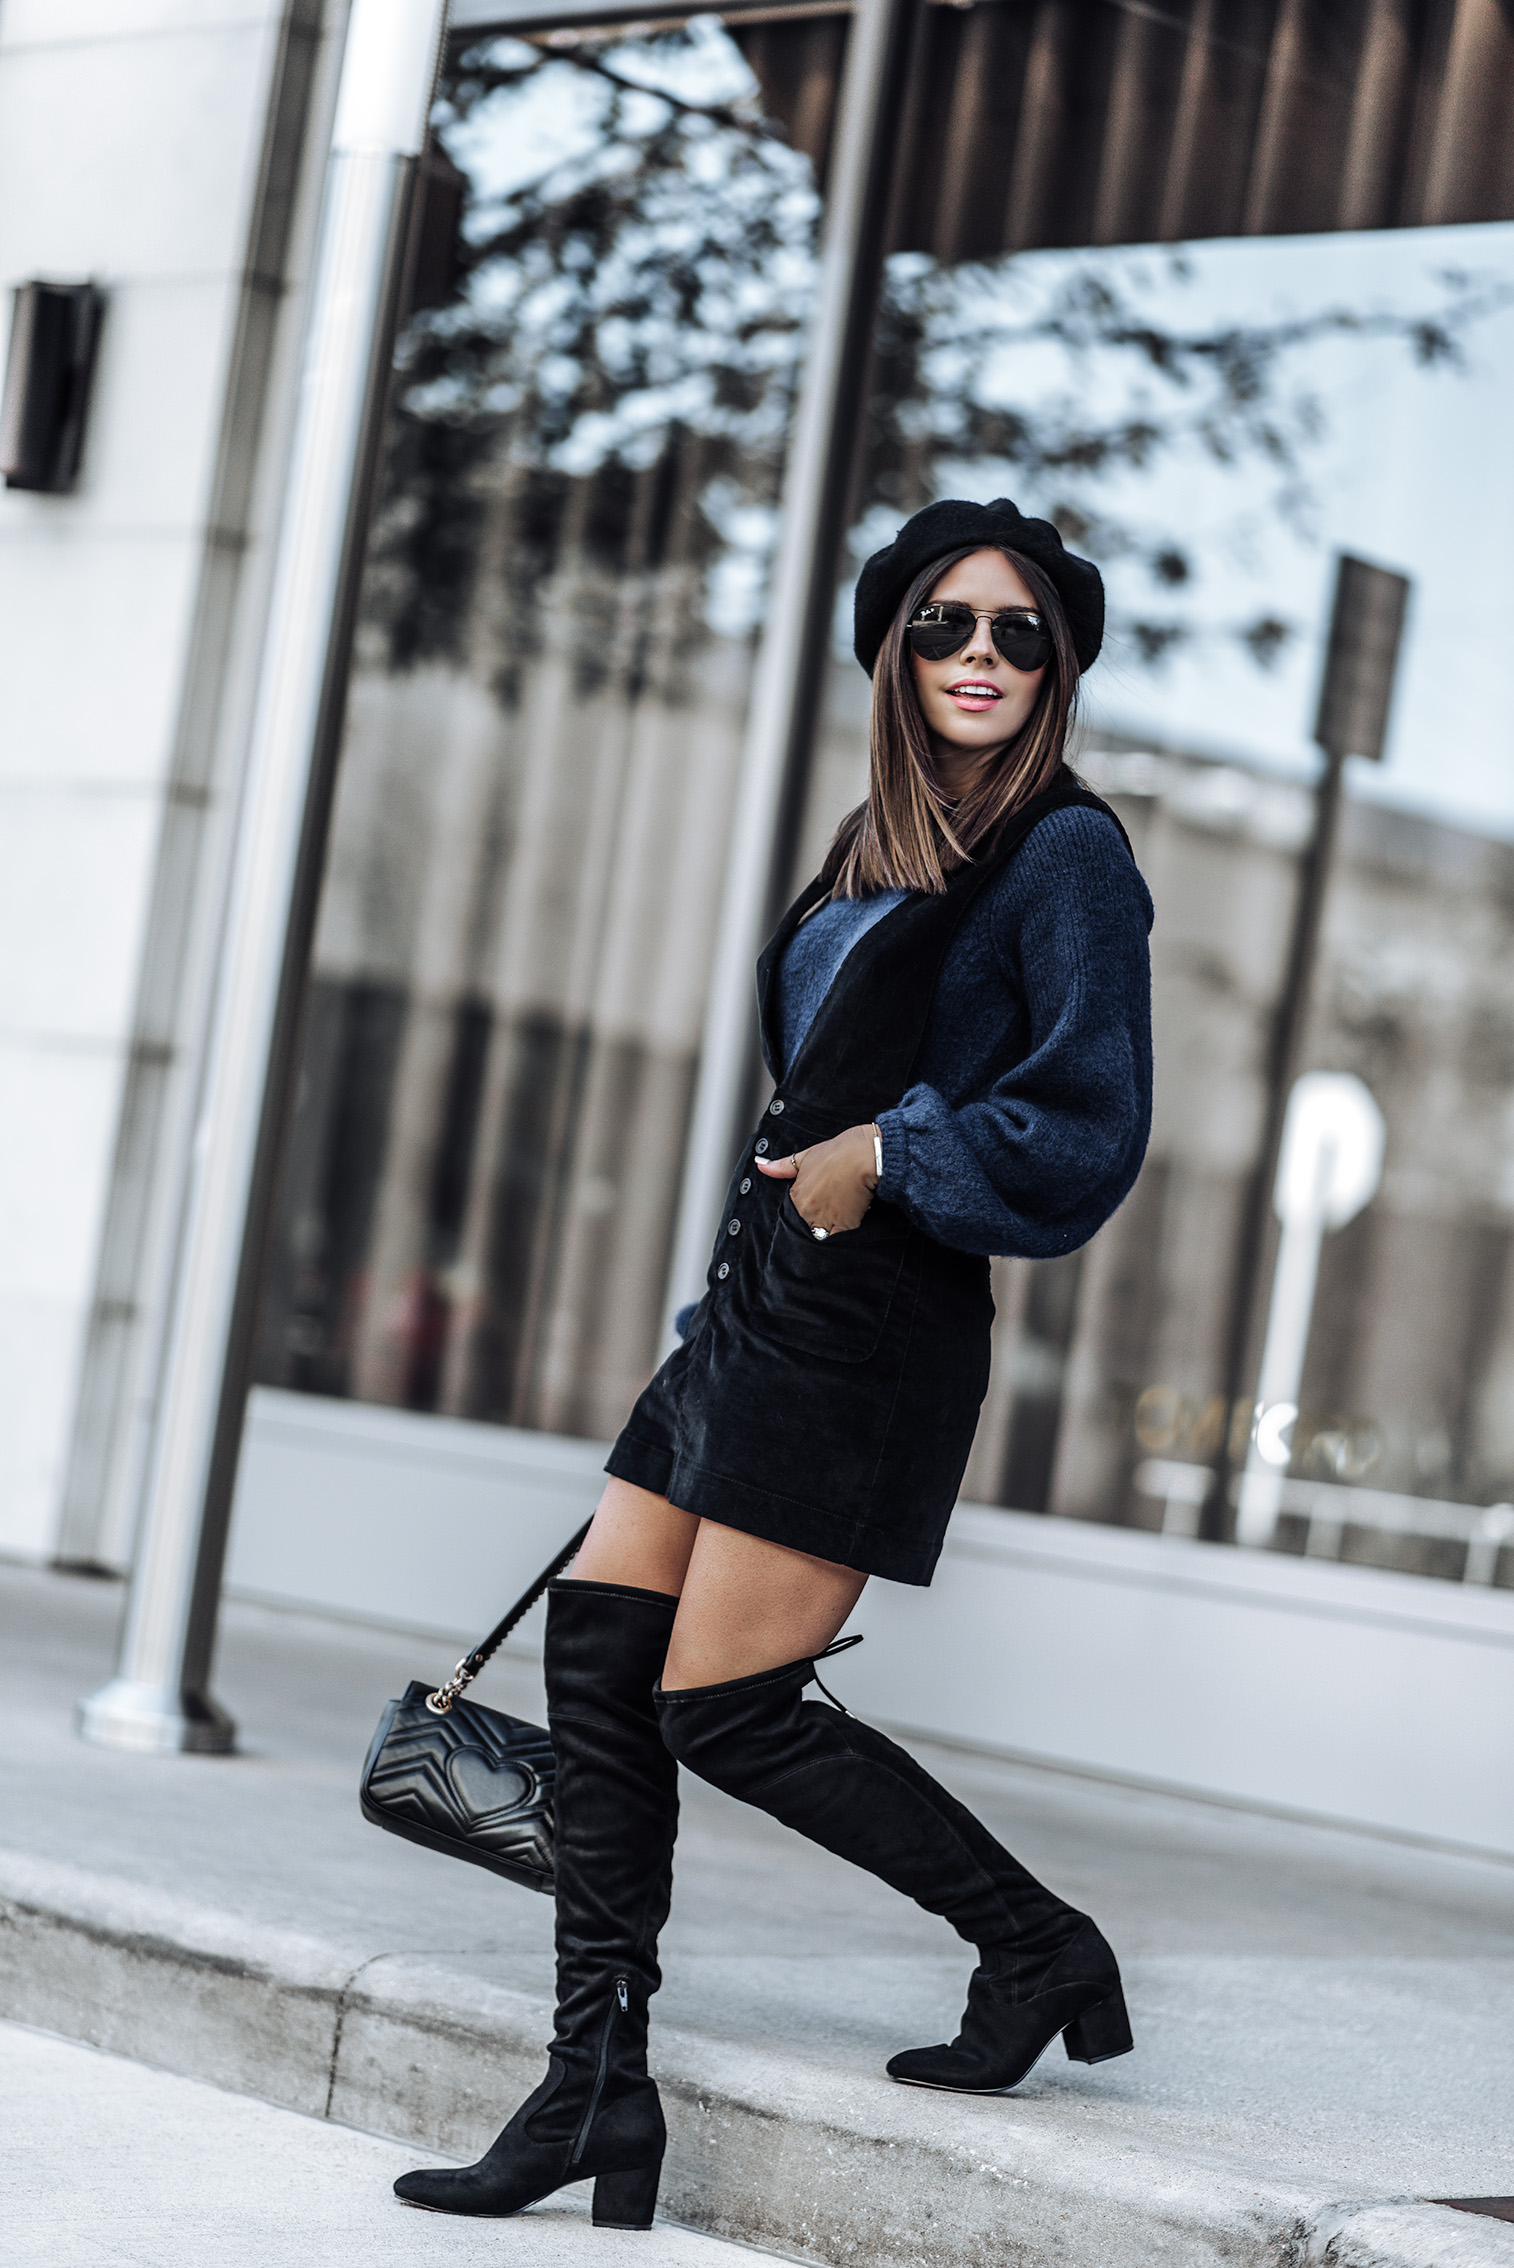 Free People Old School love jumper dress | H&M Sweater |  Ivanka Trump Pelinda Over the Knee Boots | Black Wool Beret | #falloutfits #pinaforedress #overthekneebootsoutfits